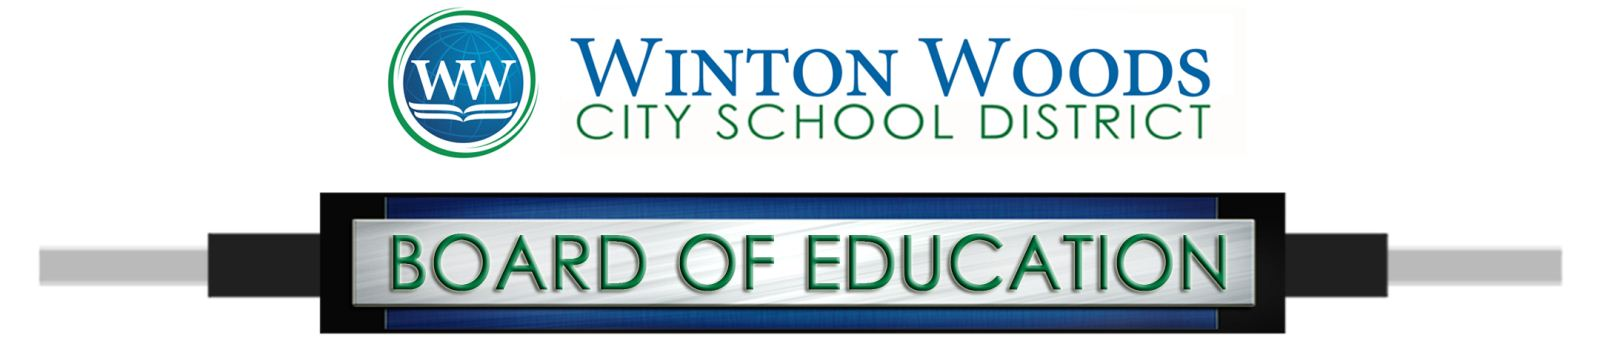 BOARD OF EDUCATION HEADER